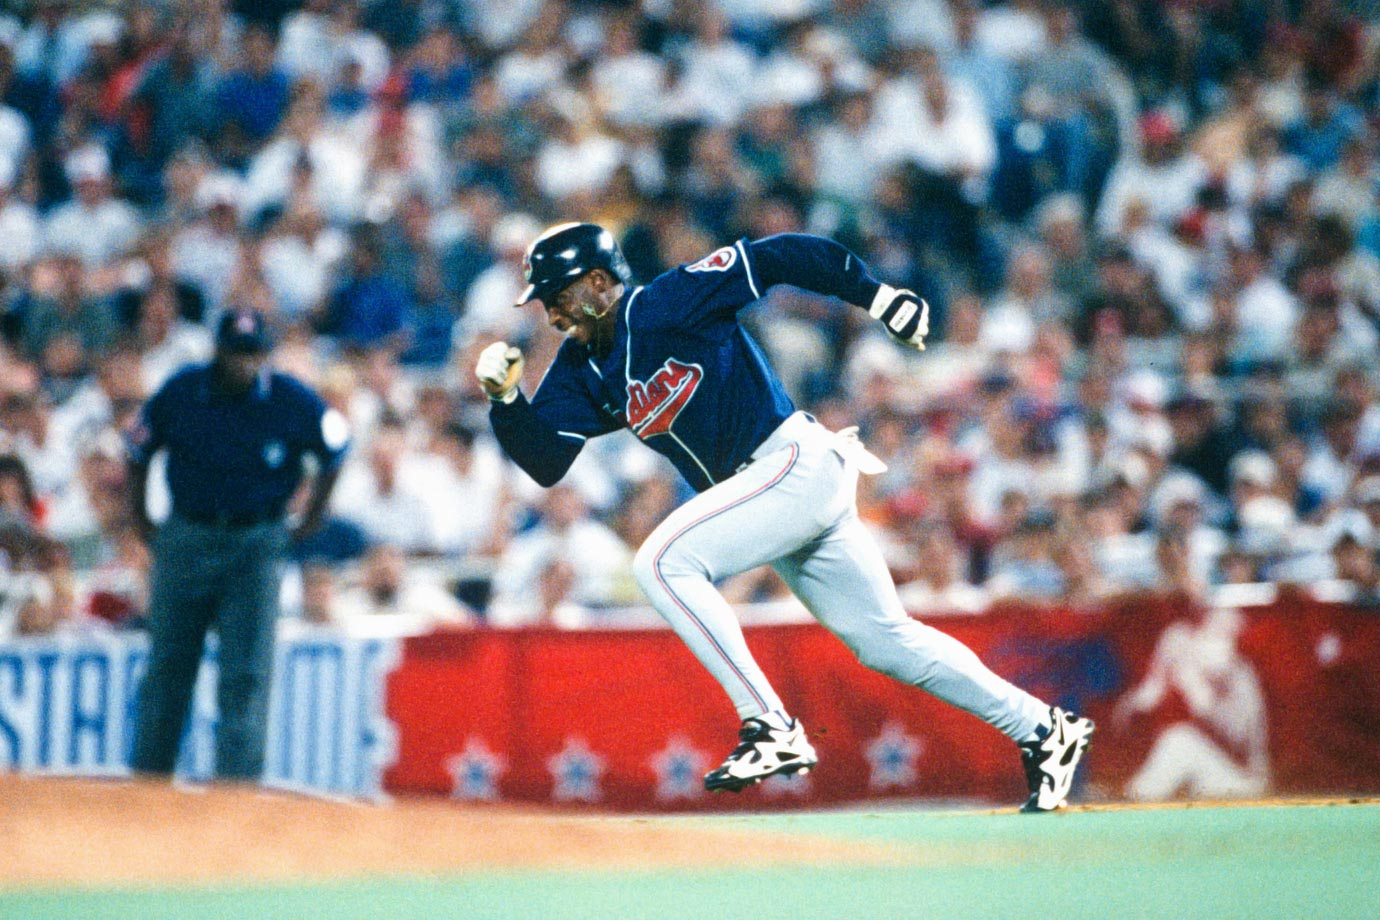 Kenny Lofton, who, like Keith Hernandez, had a career that very easily could have landed him in the Hall of Fame (career .299 average and .372 OBP). Three years after taking a flyer on Lofton, the Astros traded him just 20 games into that career. Spending most of his time with the Indians, Lofton ultimately made six All-Star appearances, won four Gold Gloves, stole 622 bases and picked up 2,428 hits while playing for 11 teams that reached the postseason in his 17-year career.